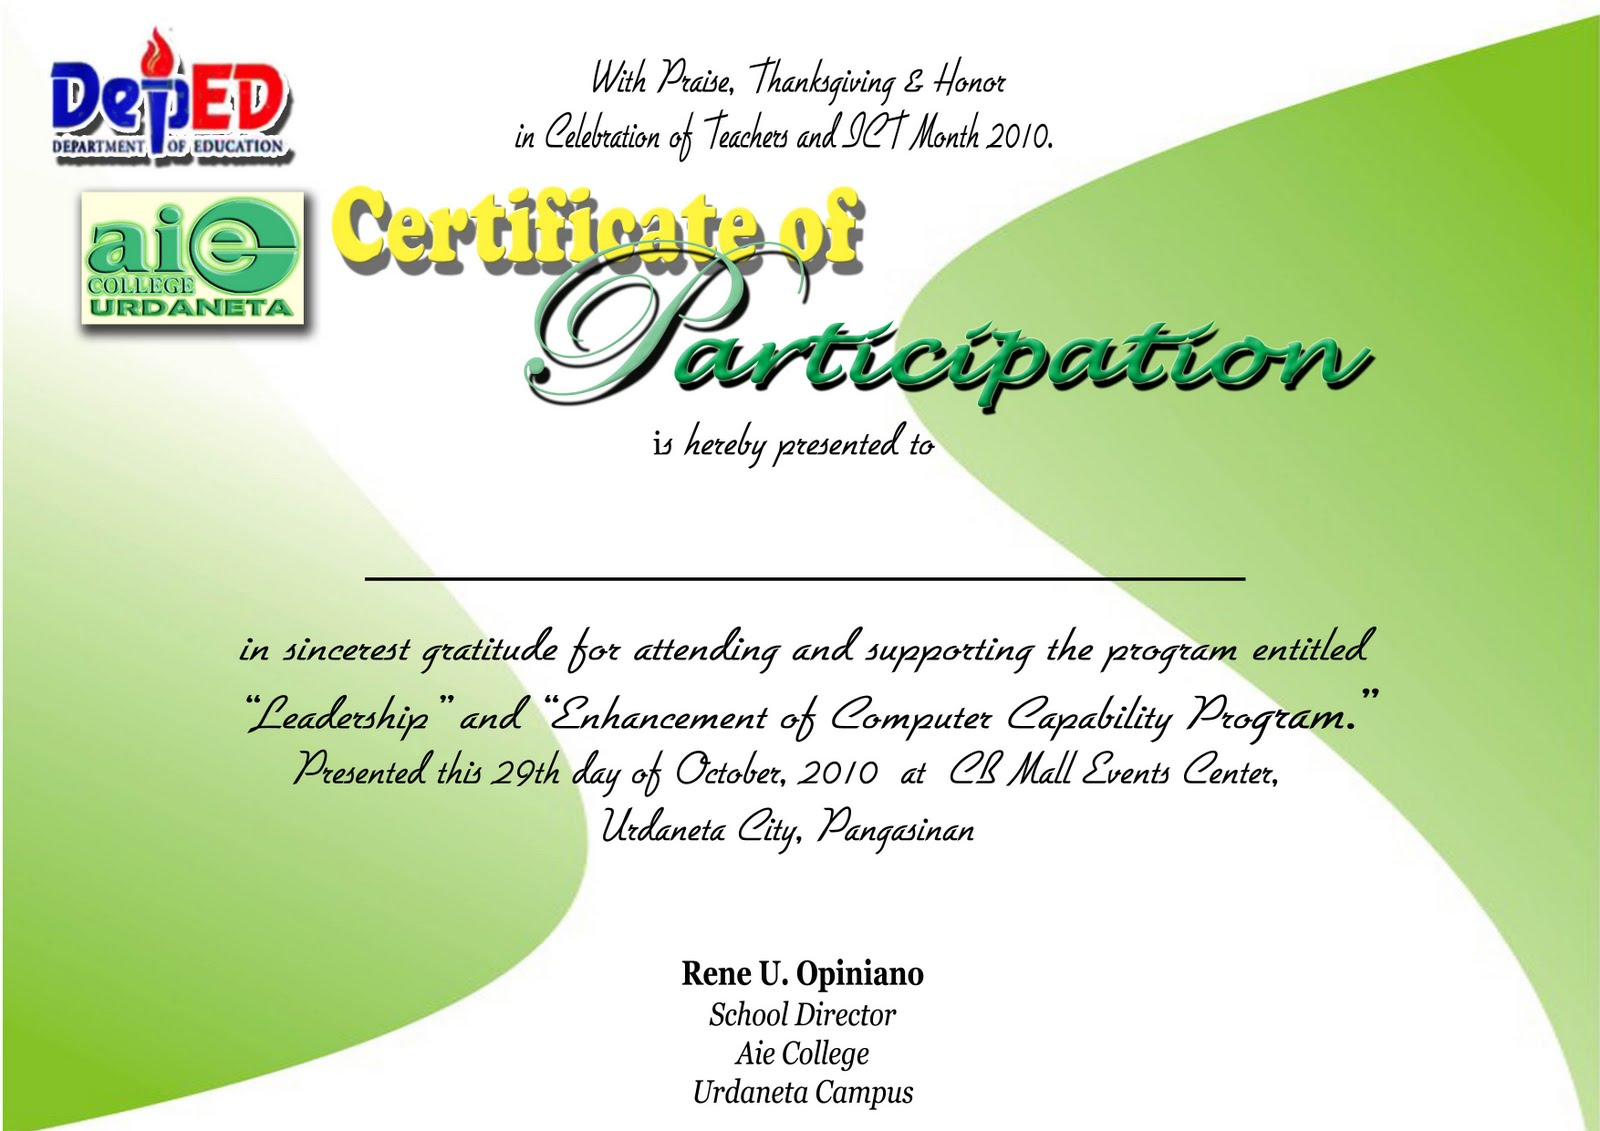 Certificate Of Participation Wording  Design Of Certificate Of Participation